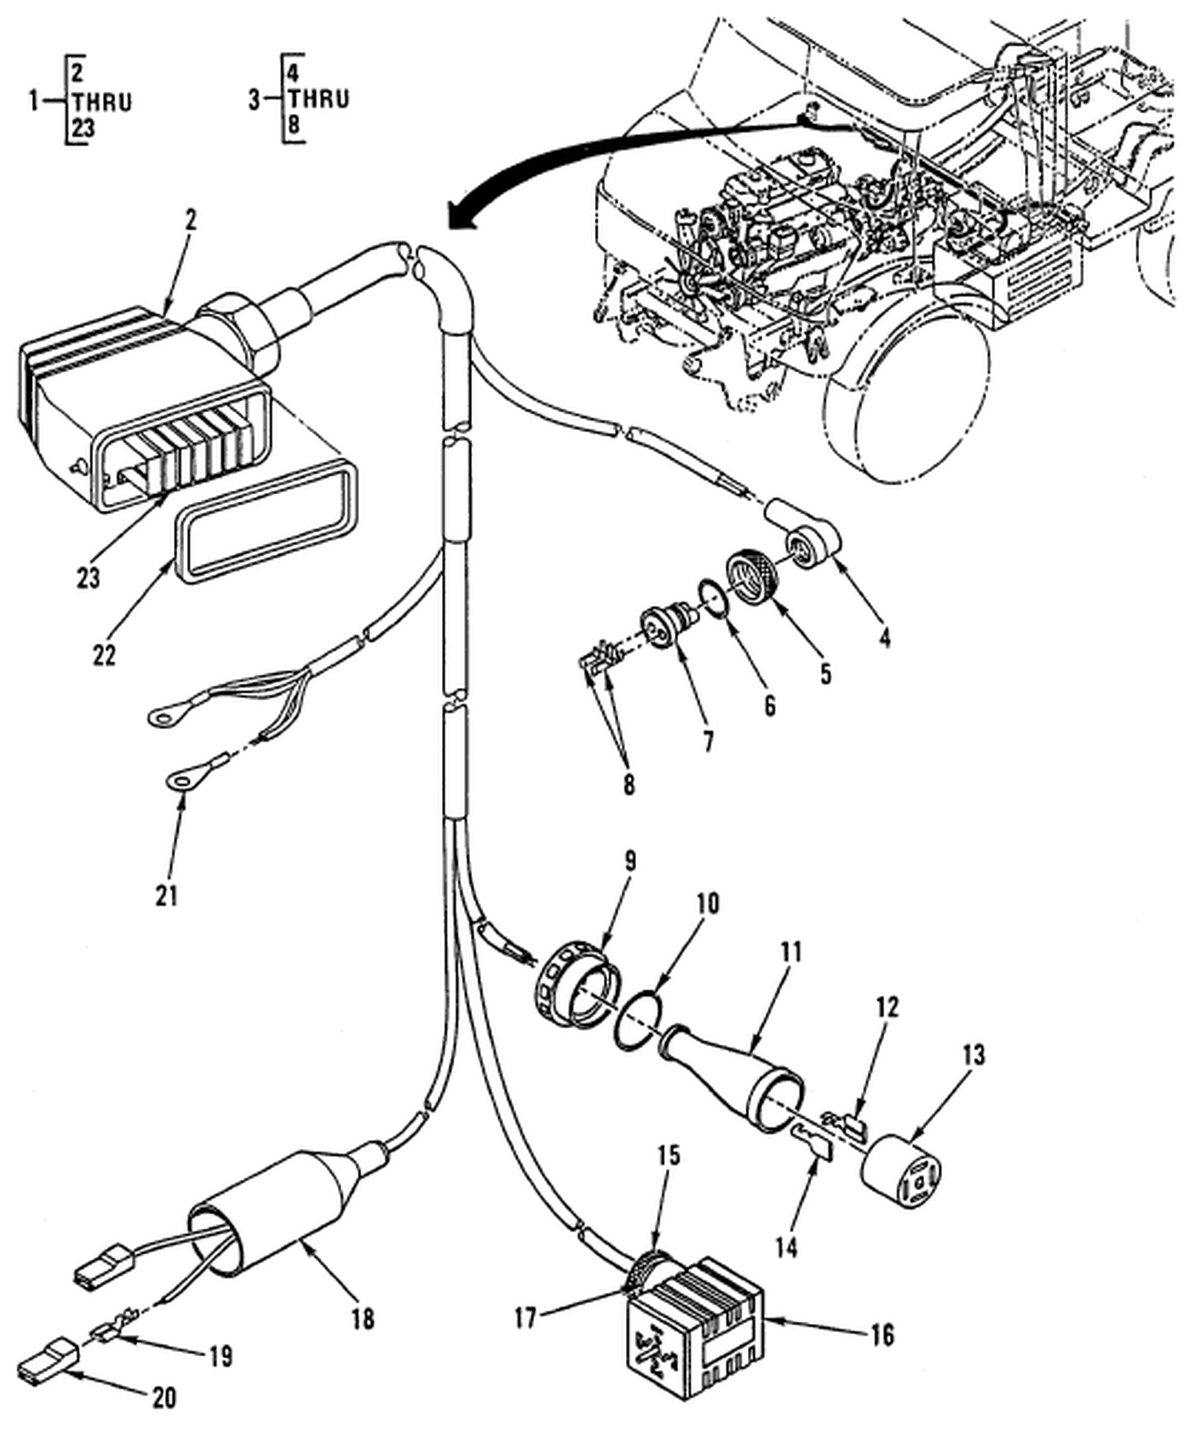 Hull or chassis wiring harness cab floor separation point to hydraulic suspension lockout wiring harness hull or chassis wiring harness cab floor